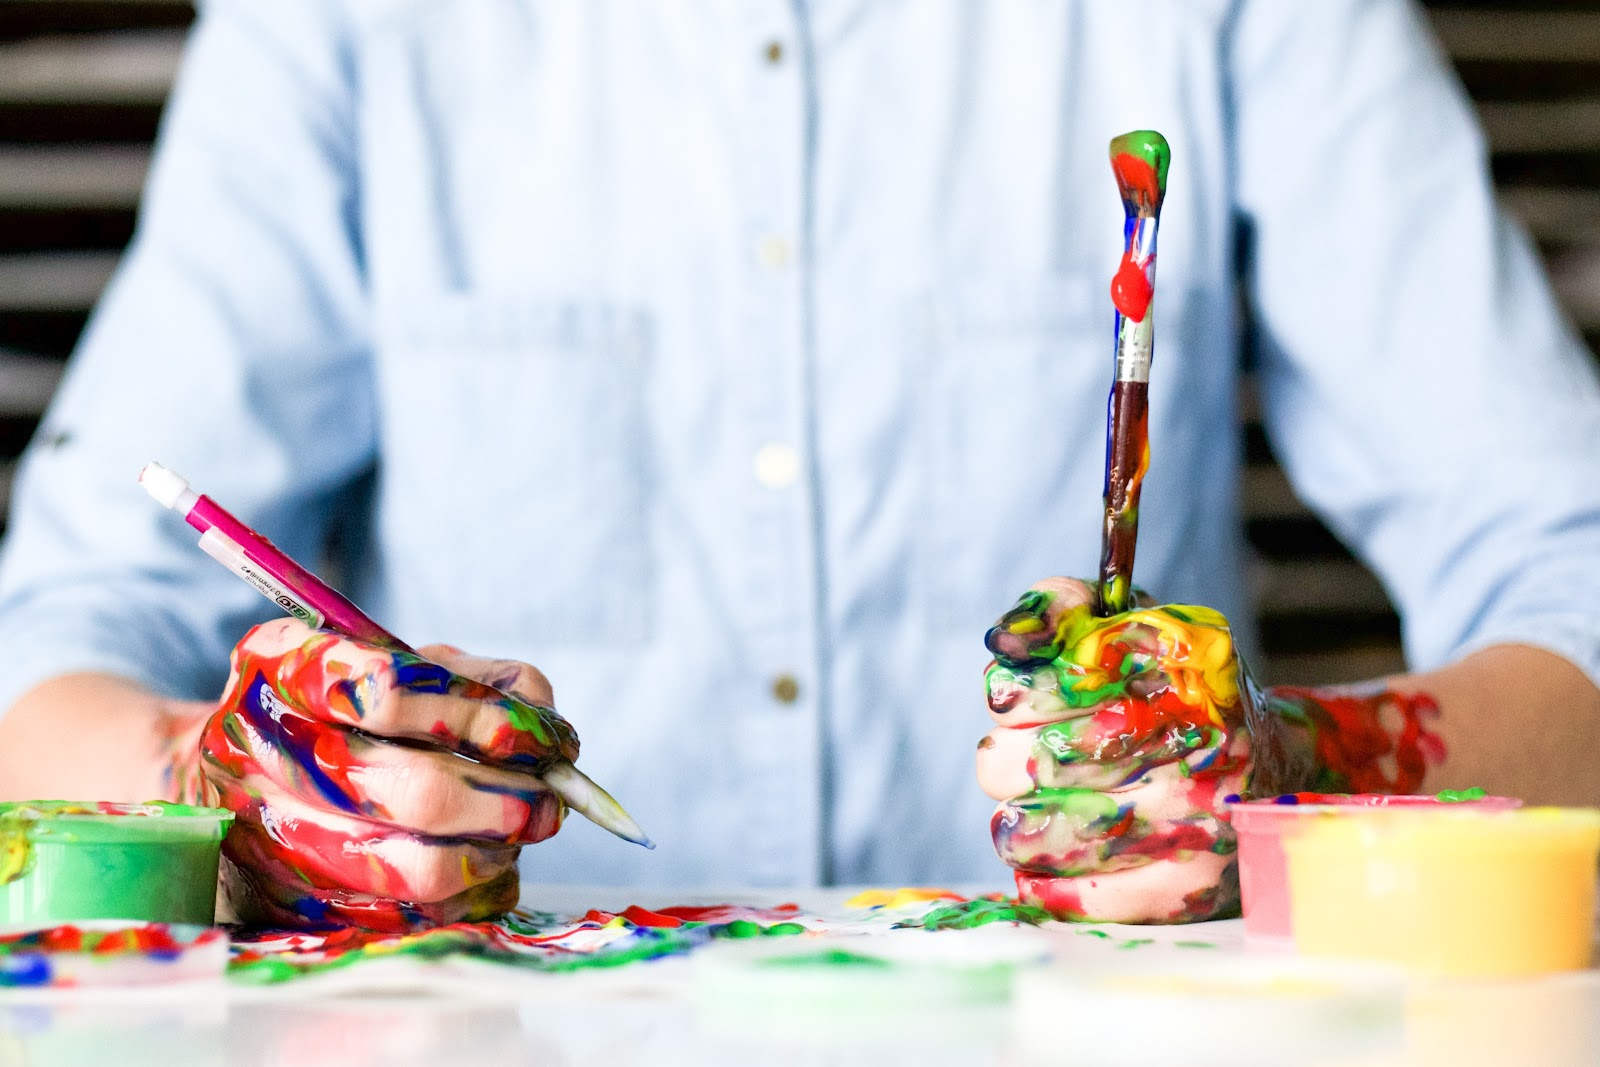 image of a person holding a paint brush and a pencil with multi-coloured paint spread around